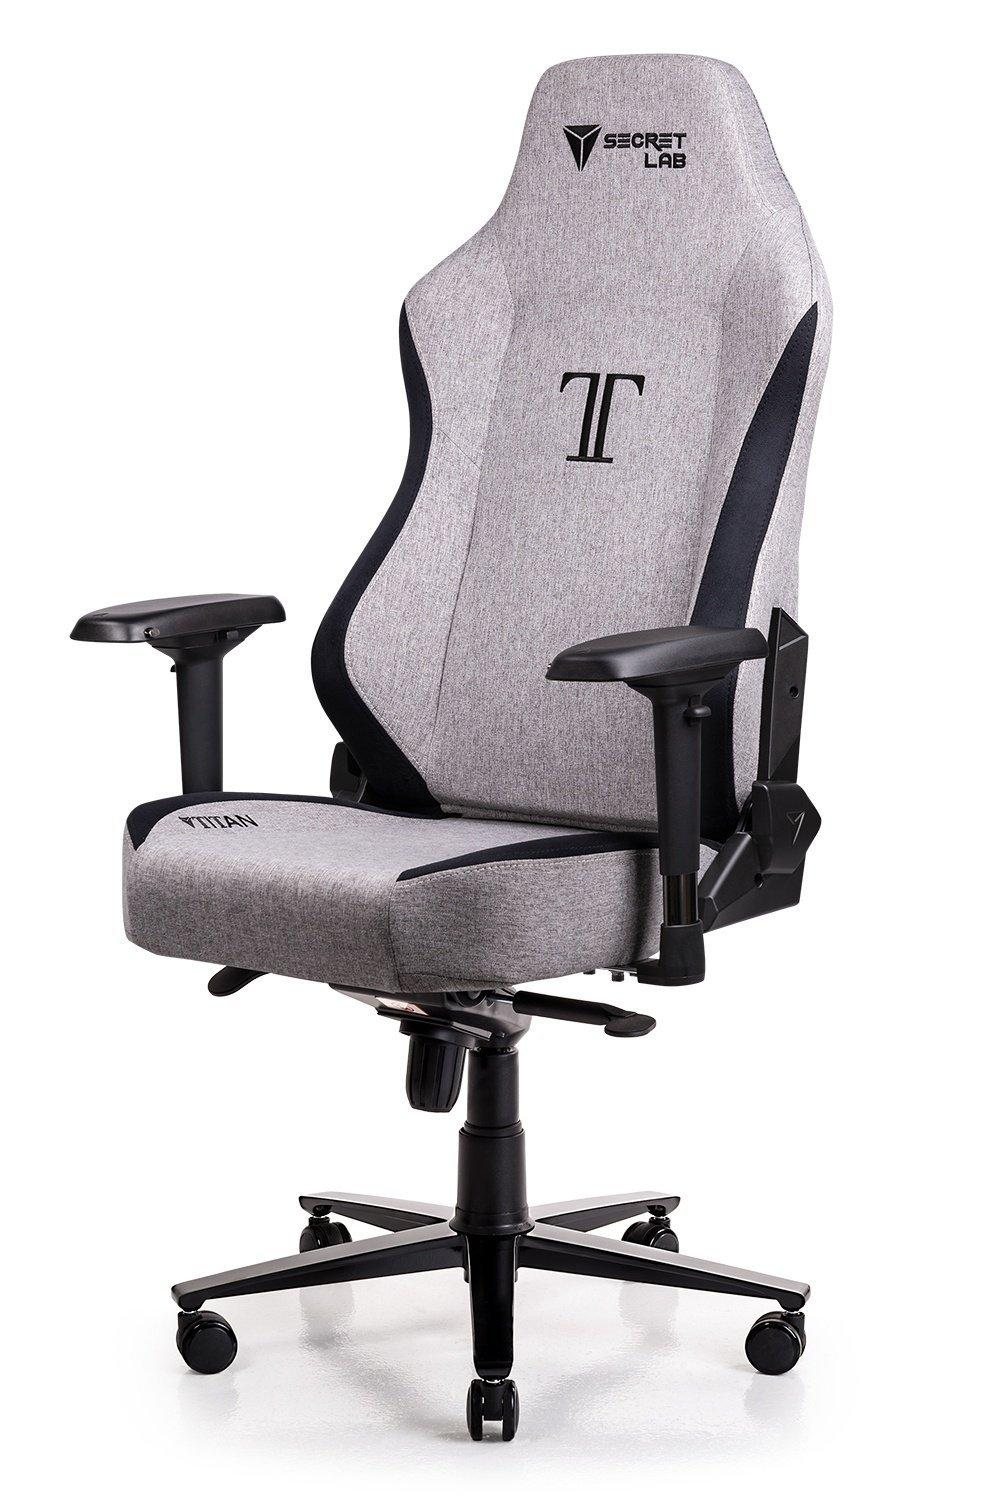 Secretlab TITAN Series Softweave Fabric Gaming Chair - Cookies & Cream